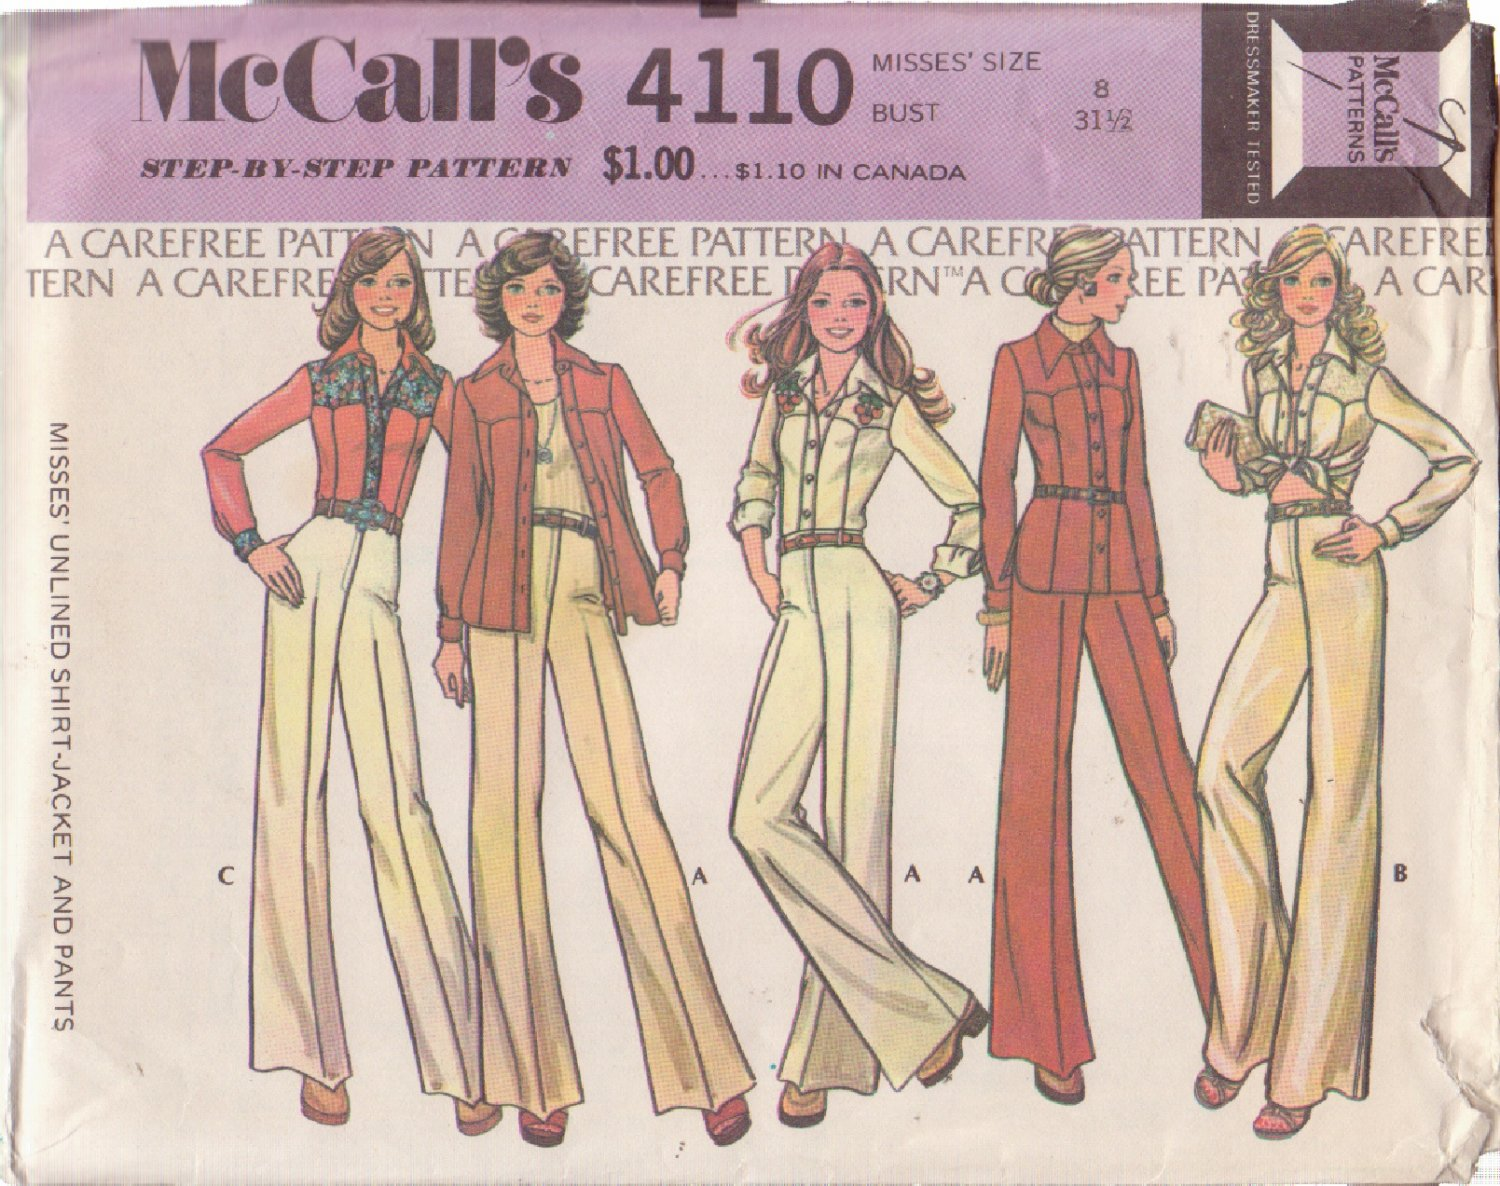 McCALL'S 1974 PATTERN 4110 SIZE 8 MISSES� UNLINED SHIRT-JACKET AND PANTS